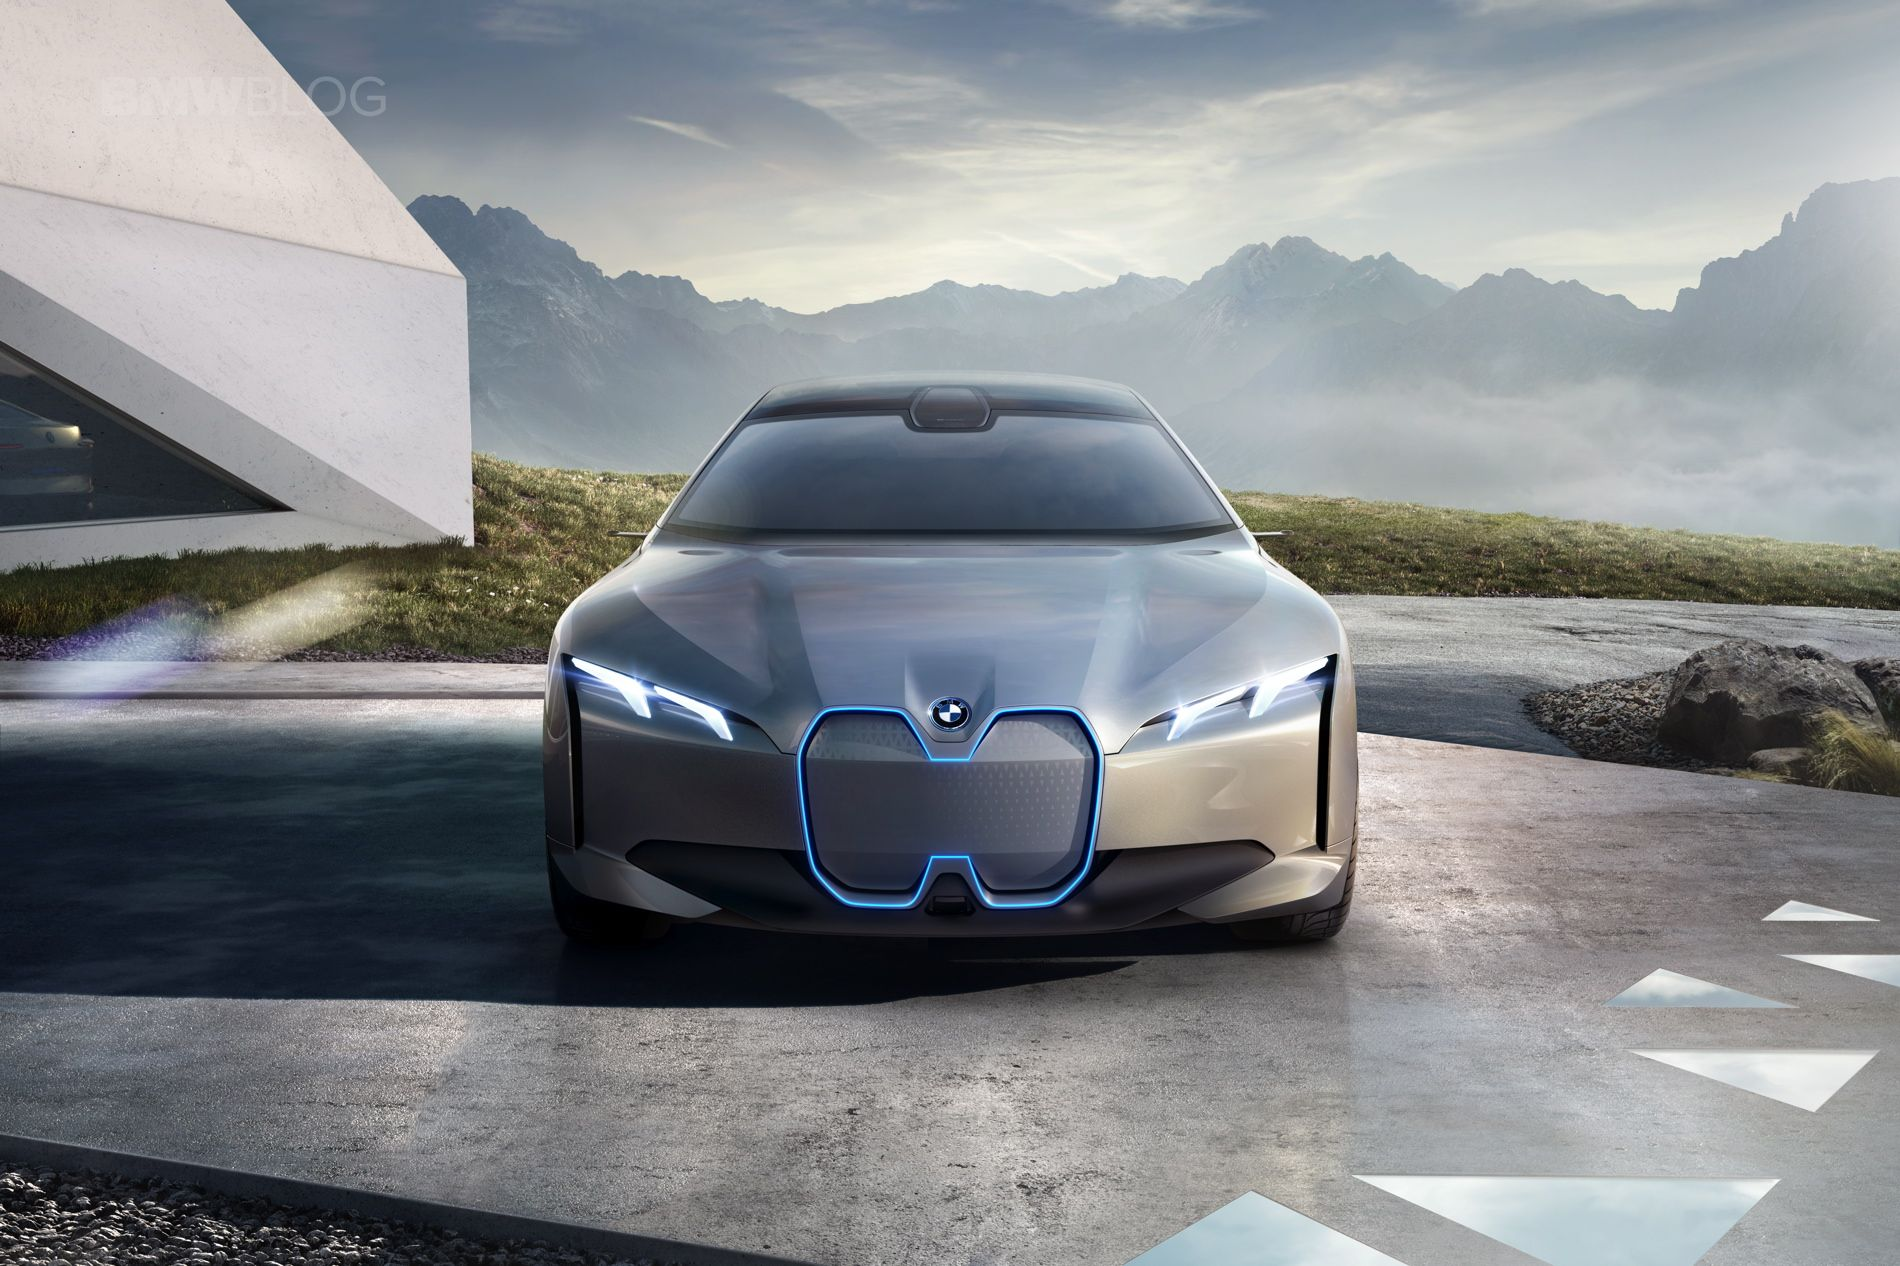 Bmw I4 Could Be Sold Under The I4 80 Sdrive And I4 80 Xdrive Names